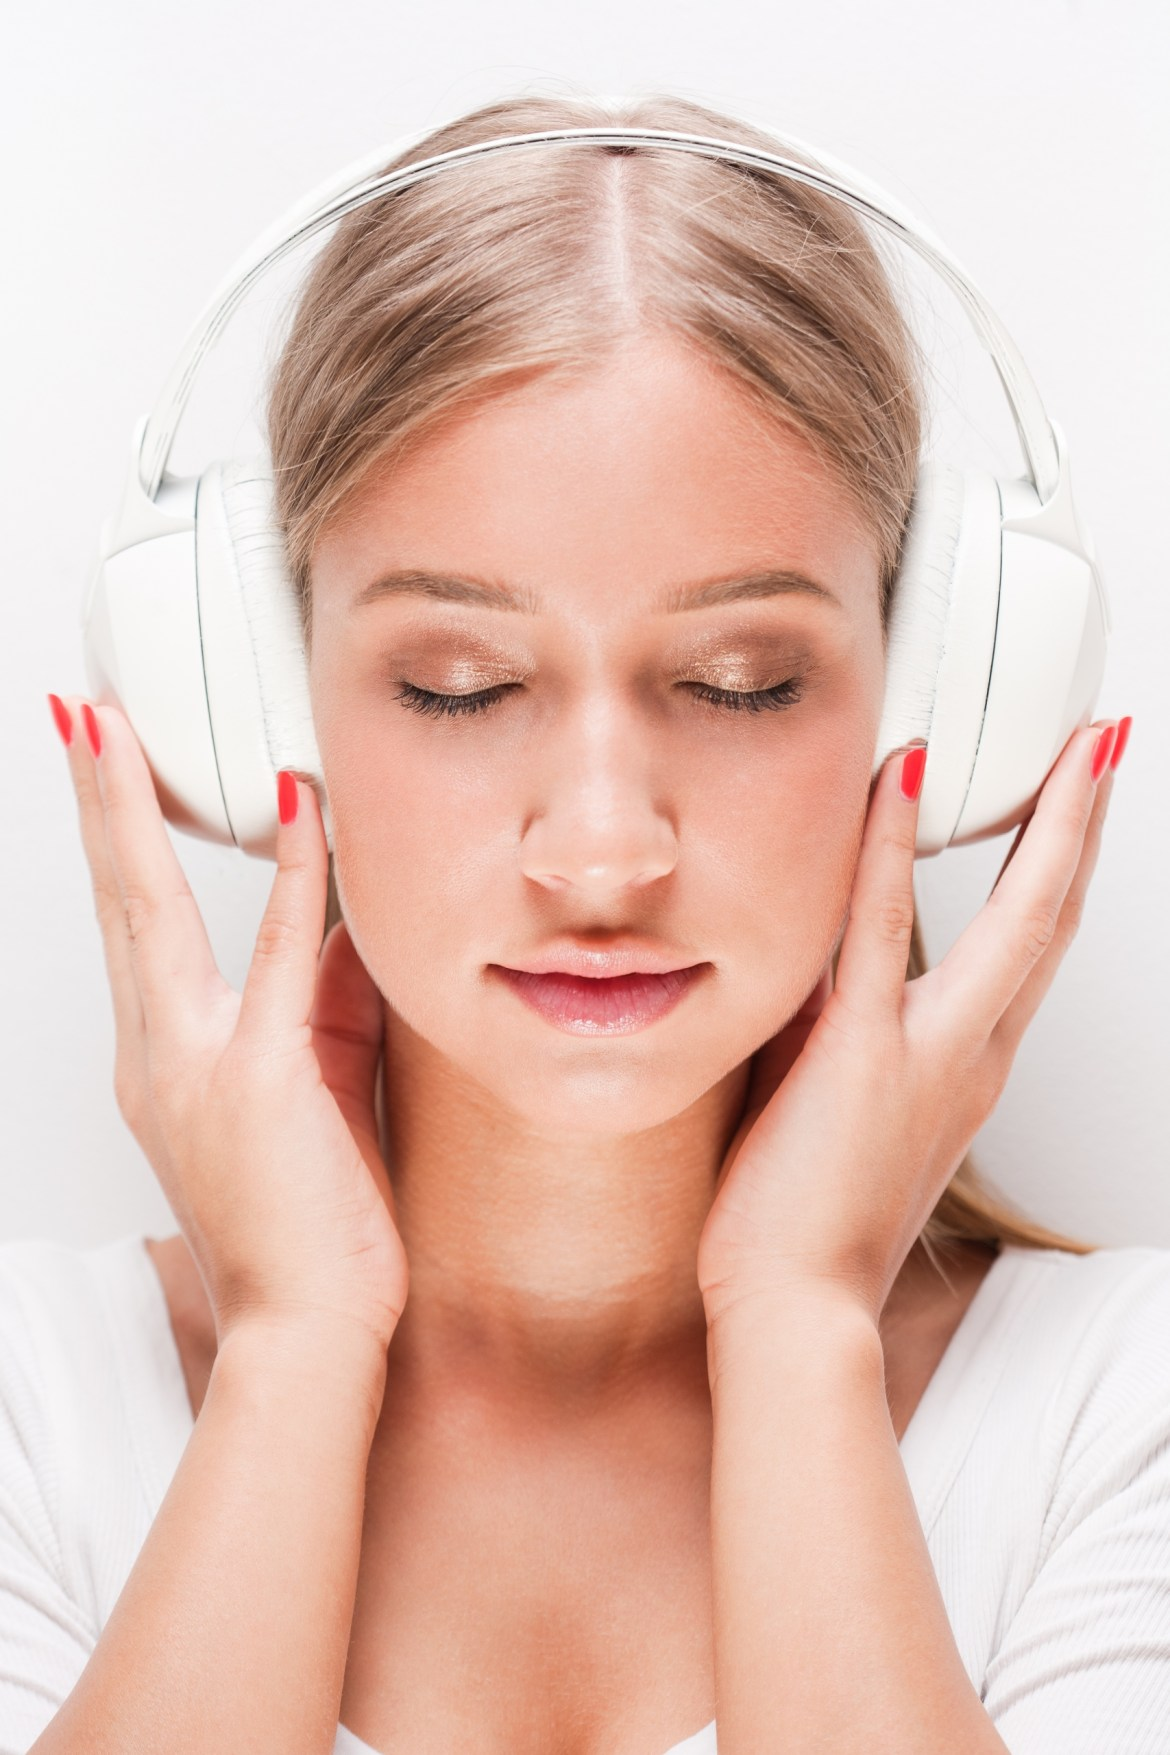 A person listening to calming music from their headphones.